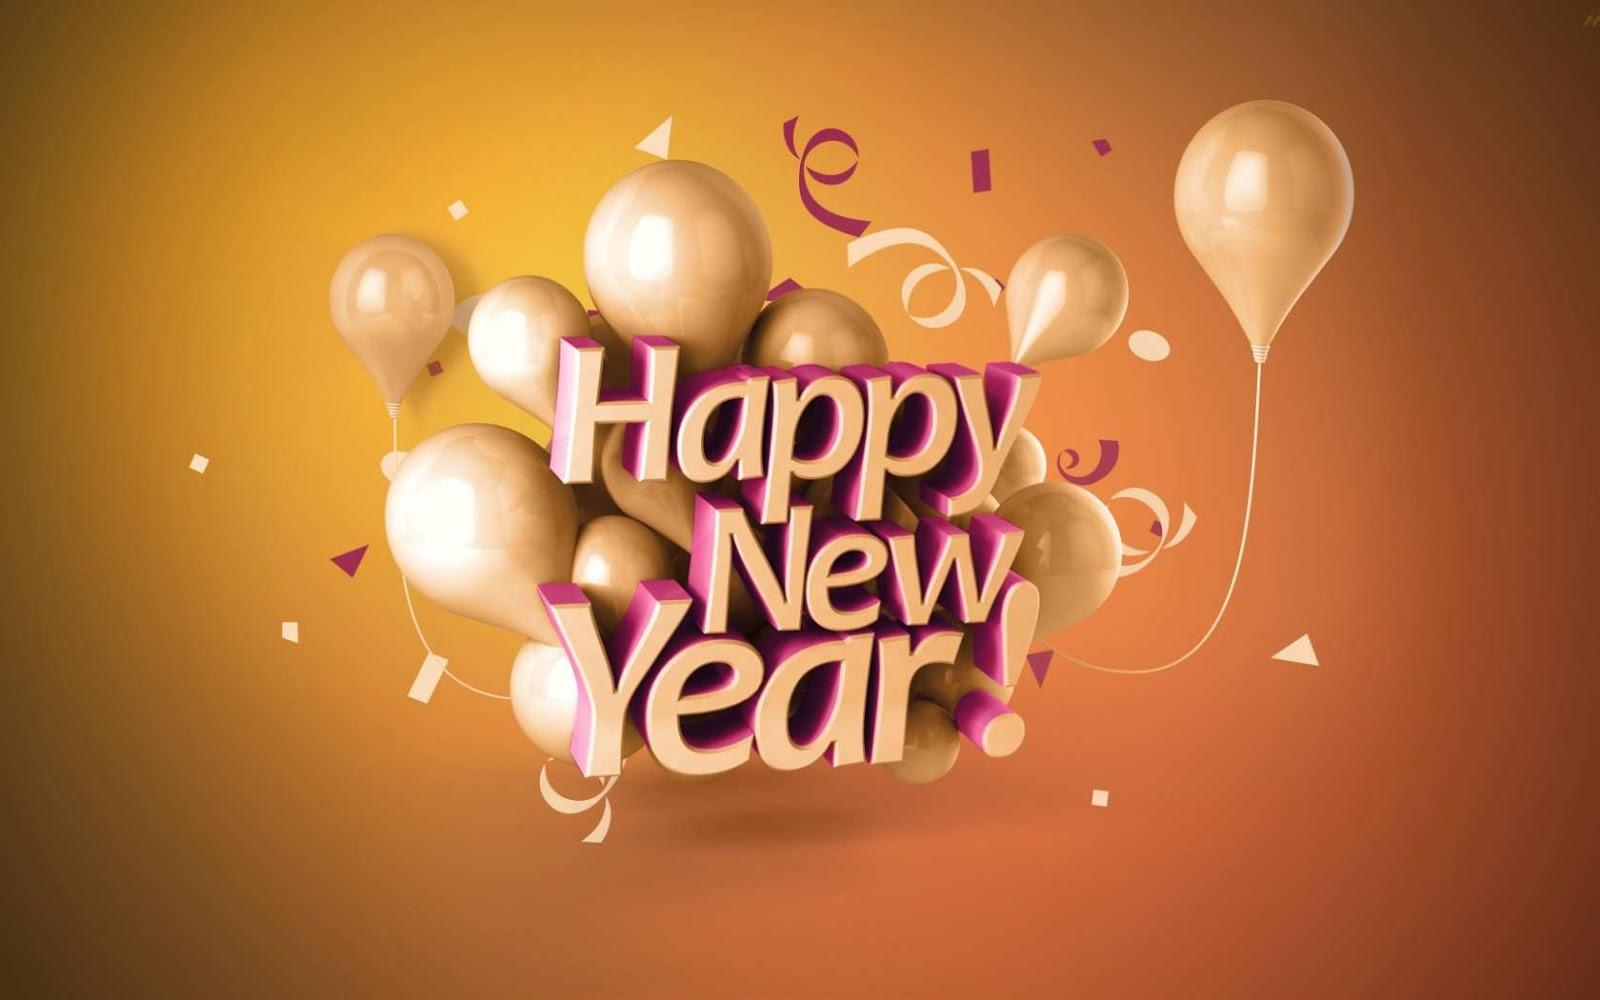 Happy New Year 2020 Image HD